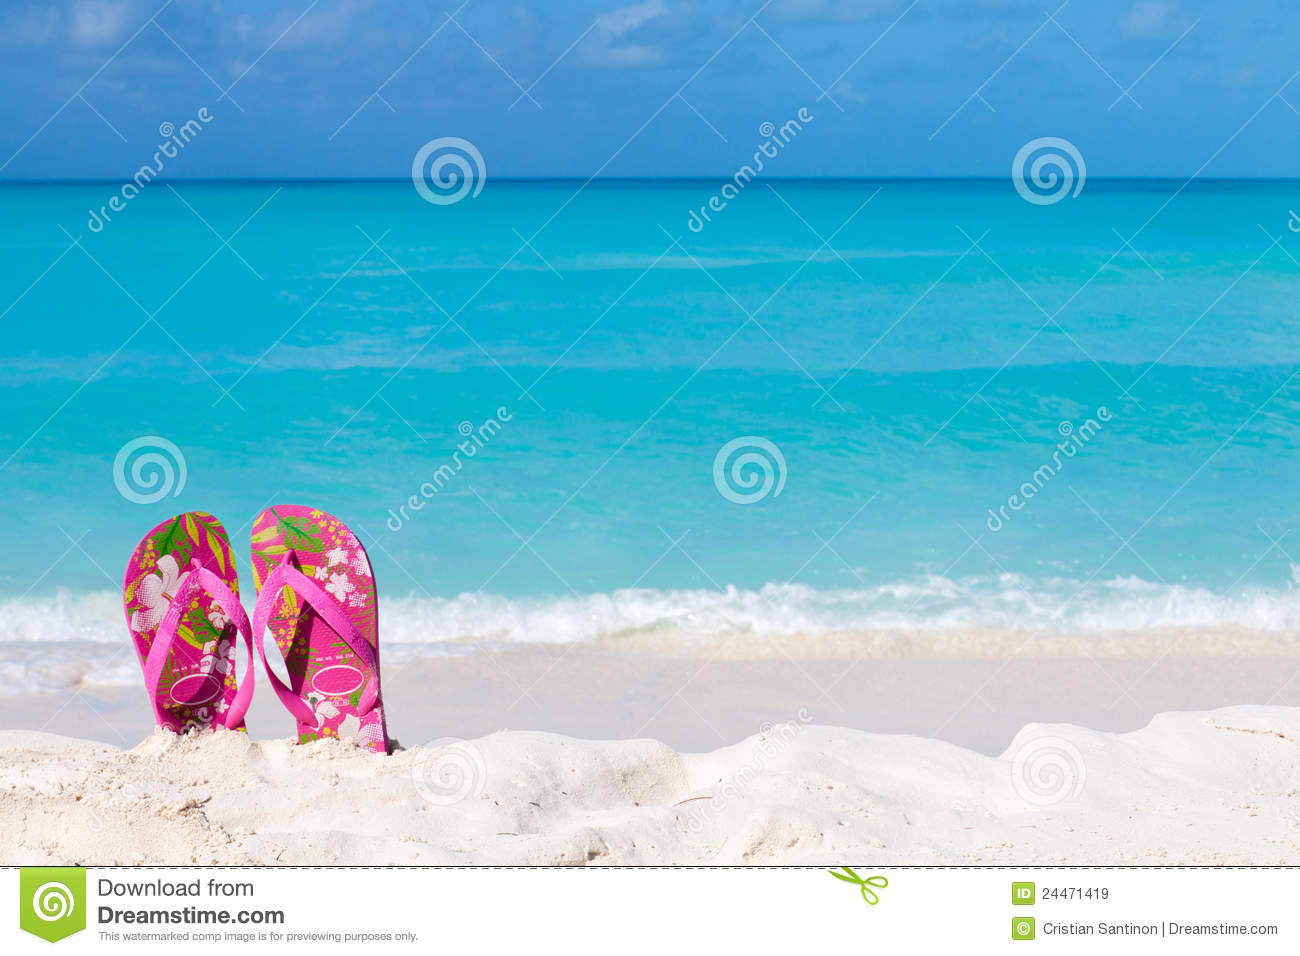 7ed29dda3 Pair Of Colored Sandals On A White Sand Beach Stock Image - Image of ...